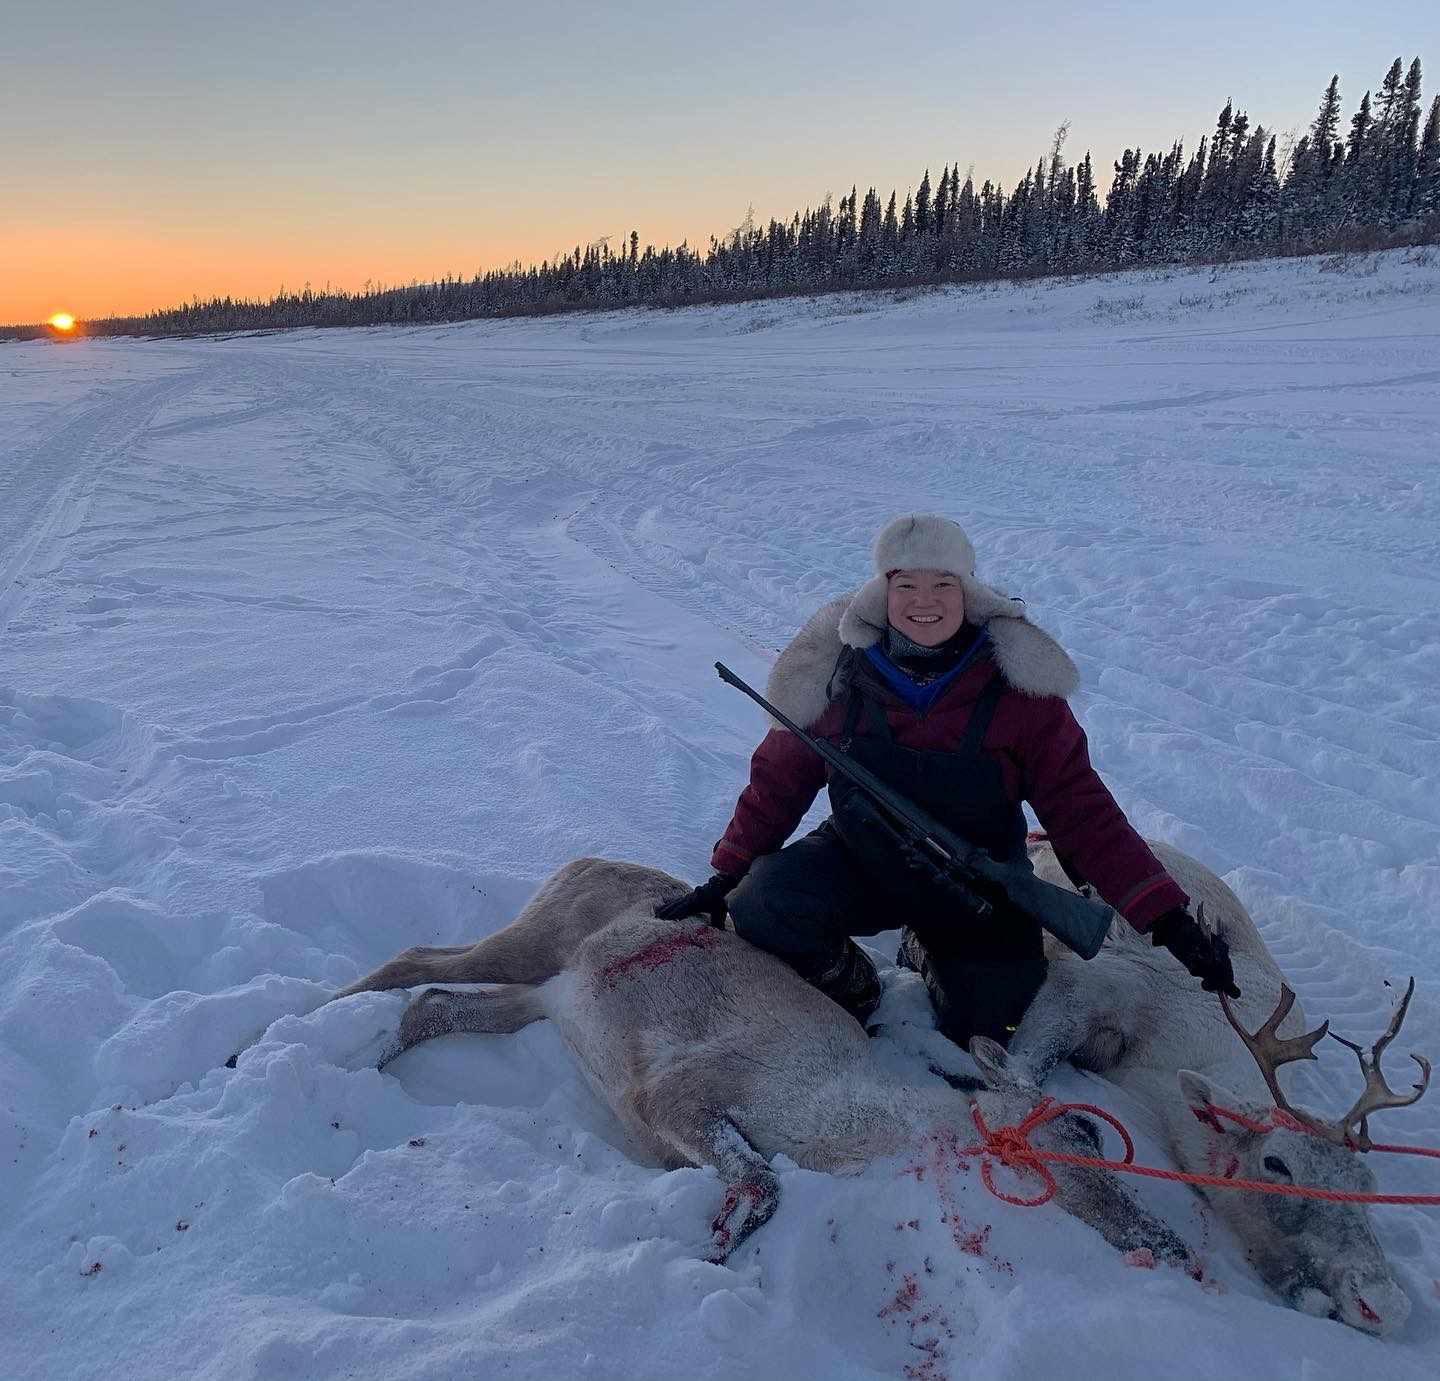 "Malaya Qaunirq Chapman poses next to two caribou she caught, 190 kilometres up river from Kuujjuaq on Jan. 31. ""I'm so happy to do as my ancestors did, hunt long distances and provide for my friends and family. I'm in my element here,"" she writes. (Photo courtesy of  Malaya Qaunirq Chapman)"